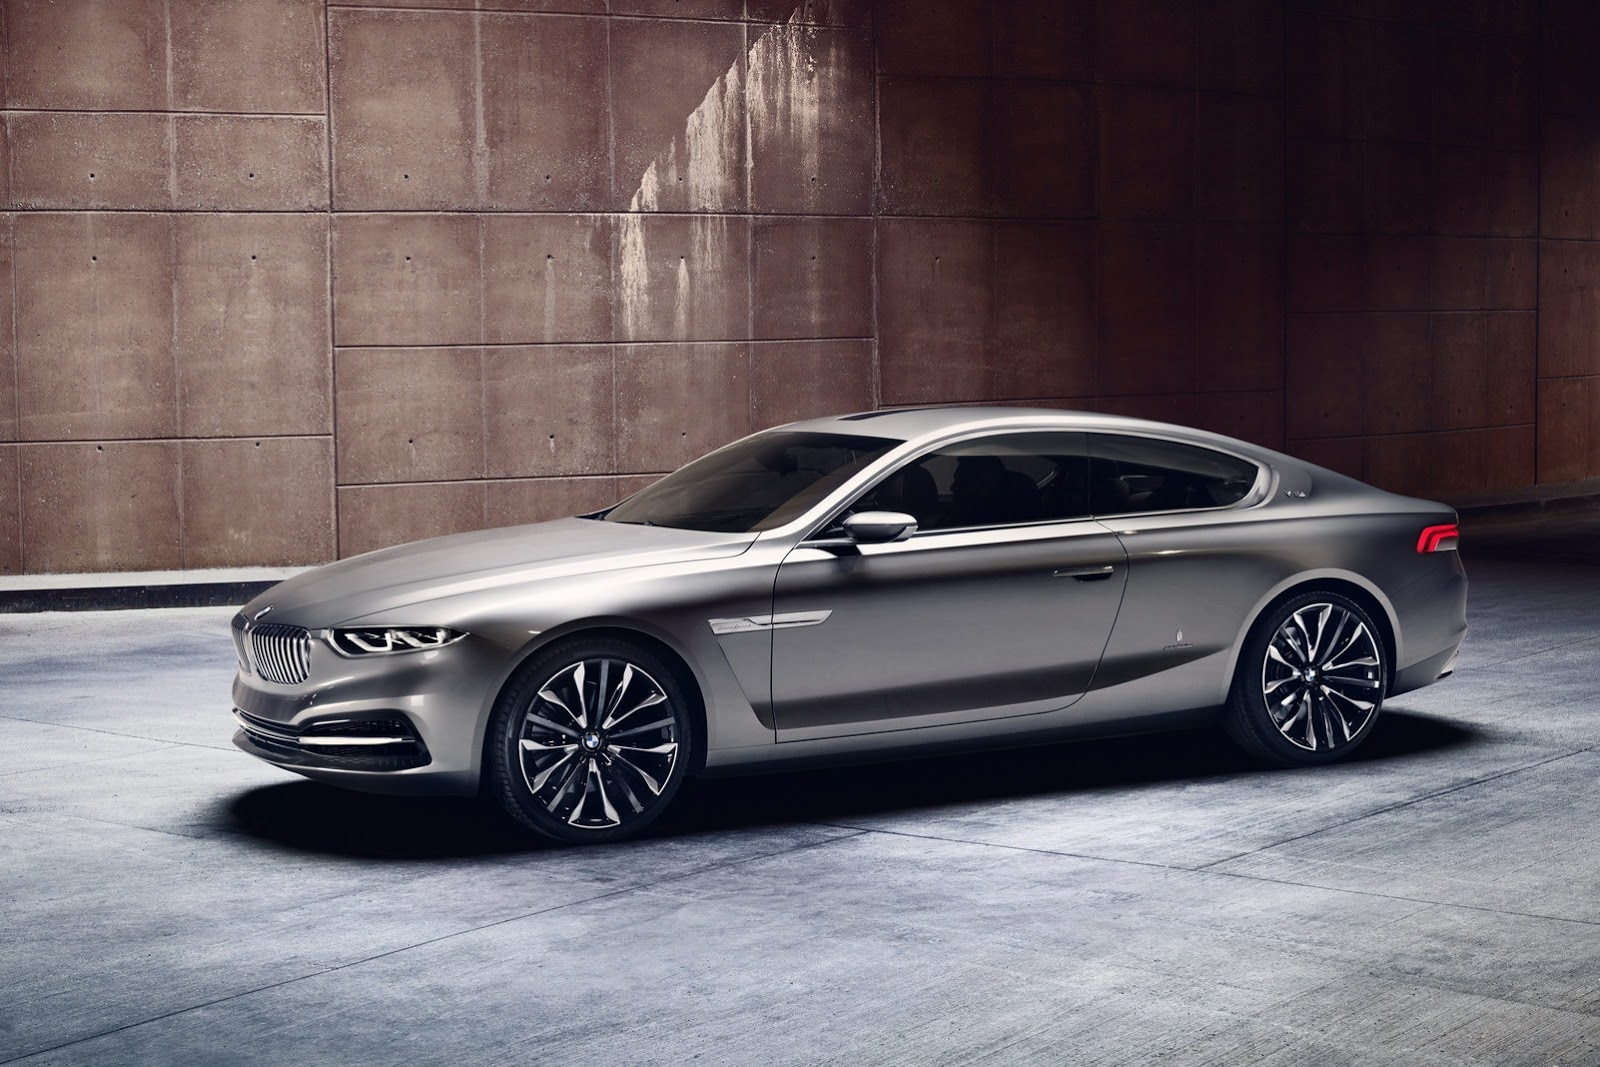 bmw 8-series will allegedly arrive2020, replace the 6-series